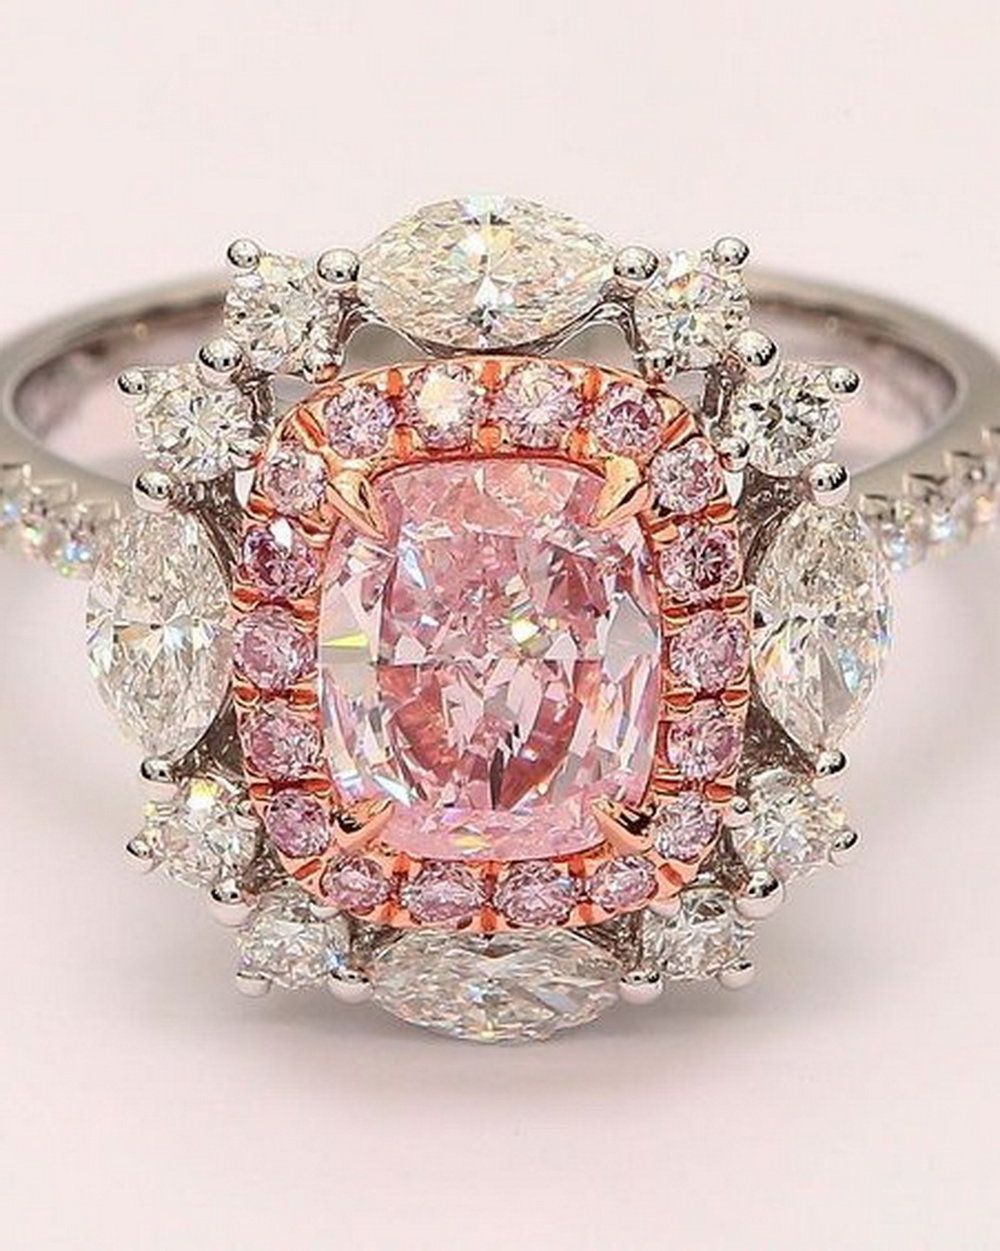 Creativity and combining different diamond shapes lead to designing ...